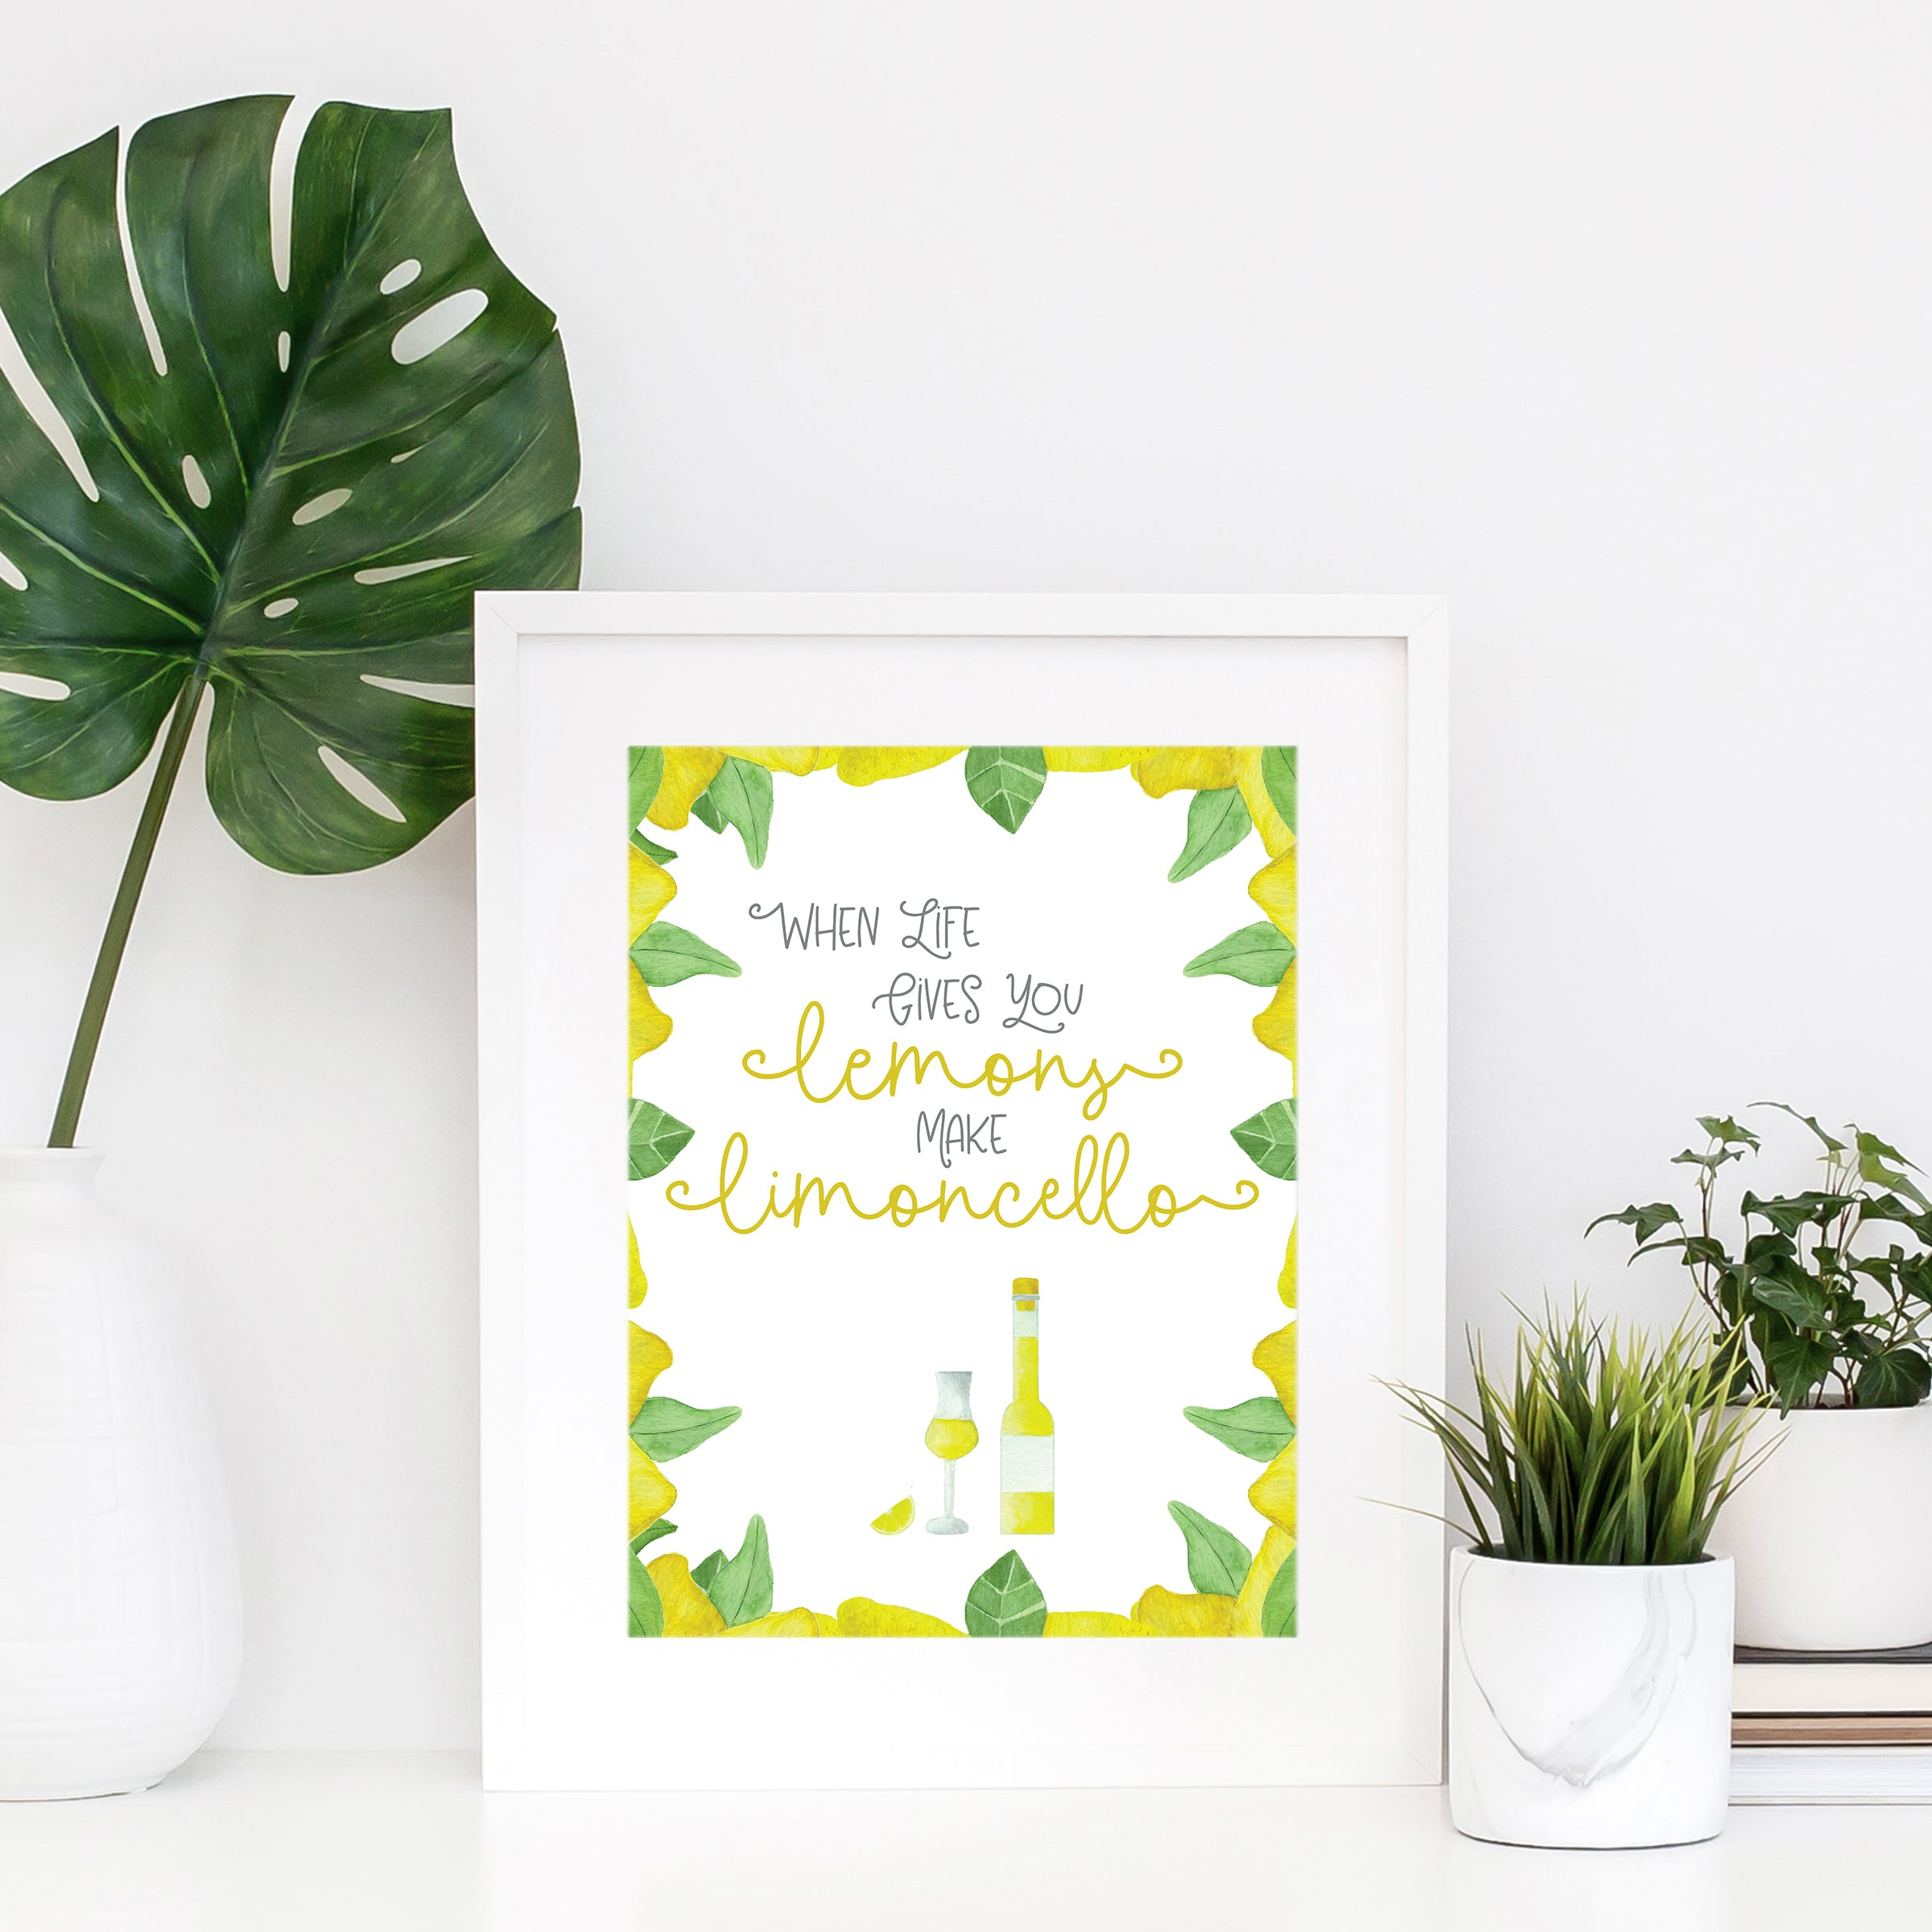 When Life Gives You Lemons Make Limoncello Wall Print Wall Art Home Decor